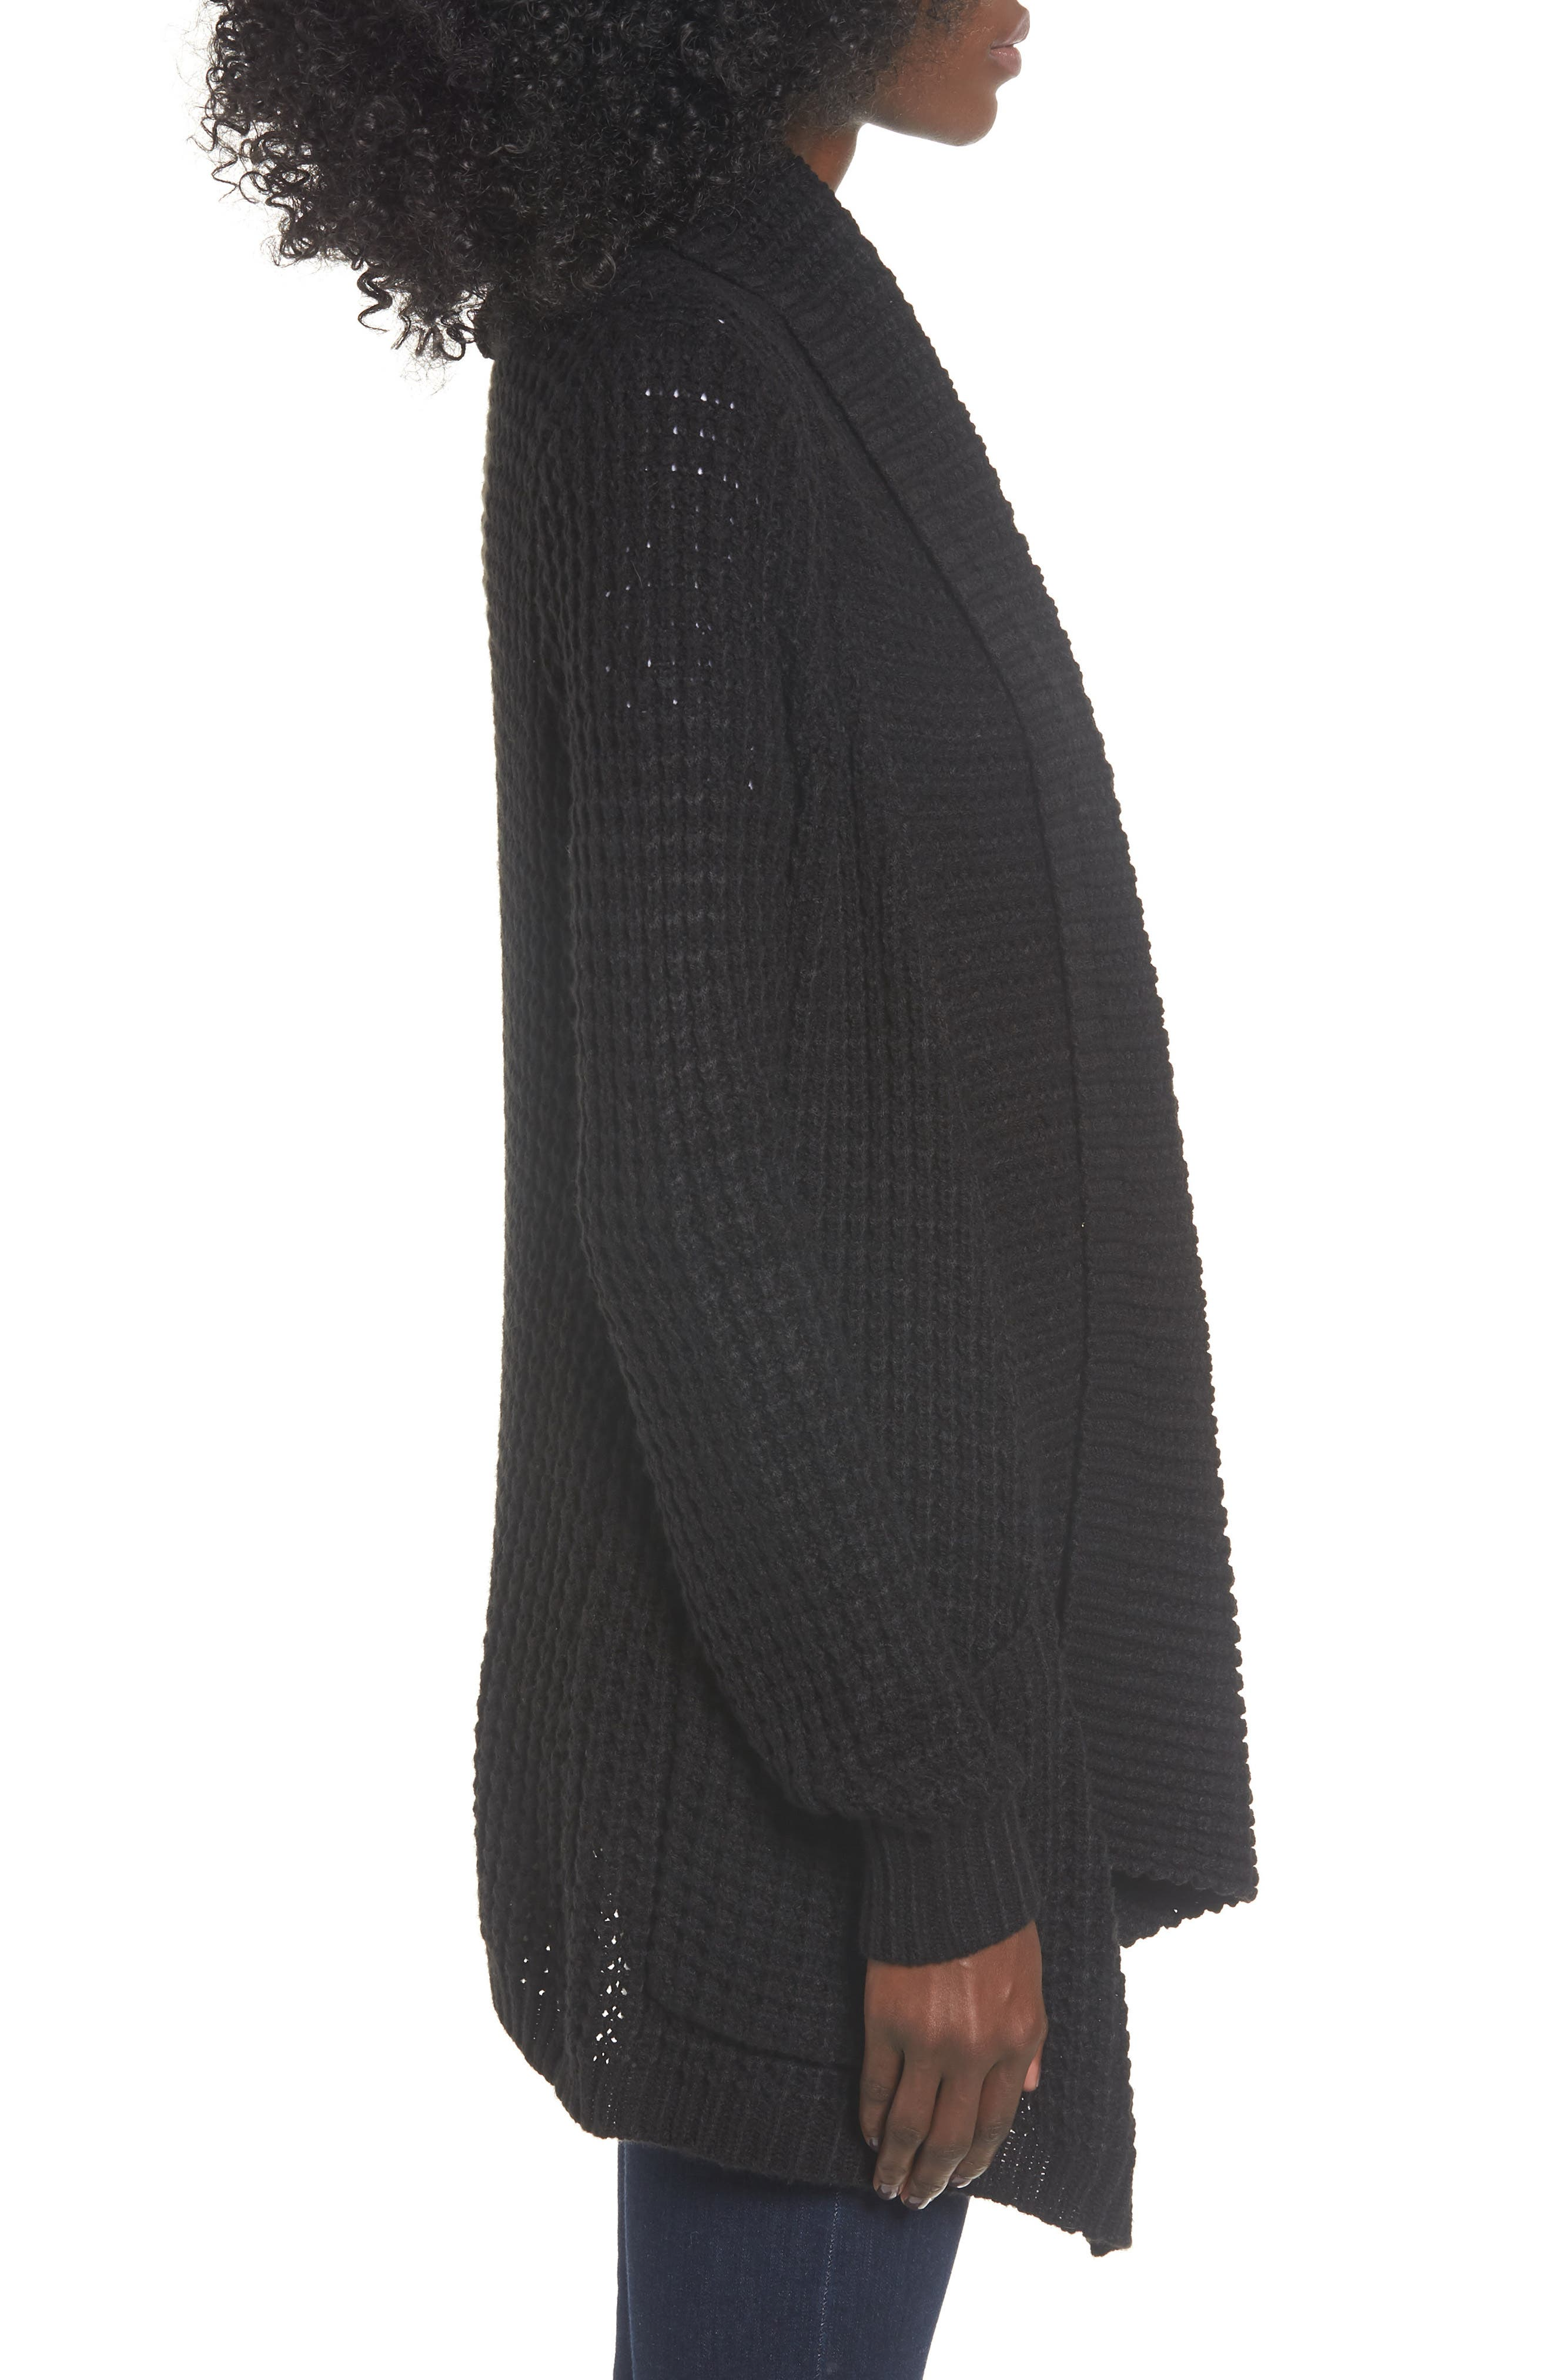 Shambala Knit Cardigan,                             Alternate thumbnail 3, color,                             BLACK